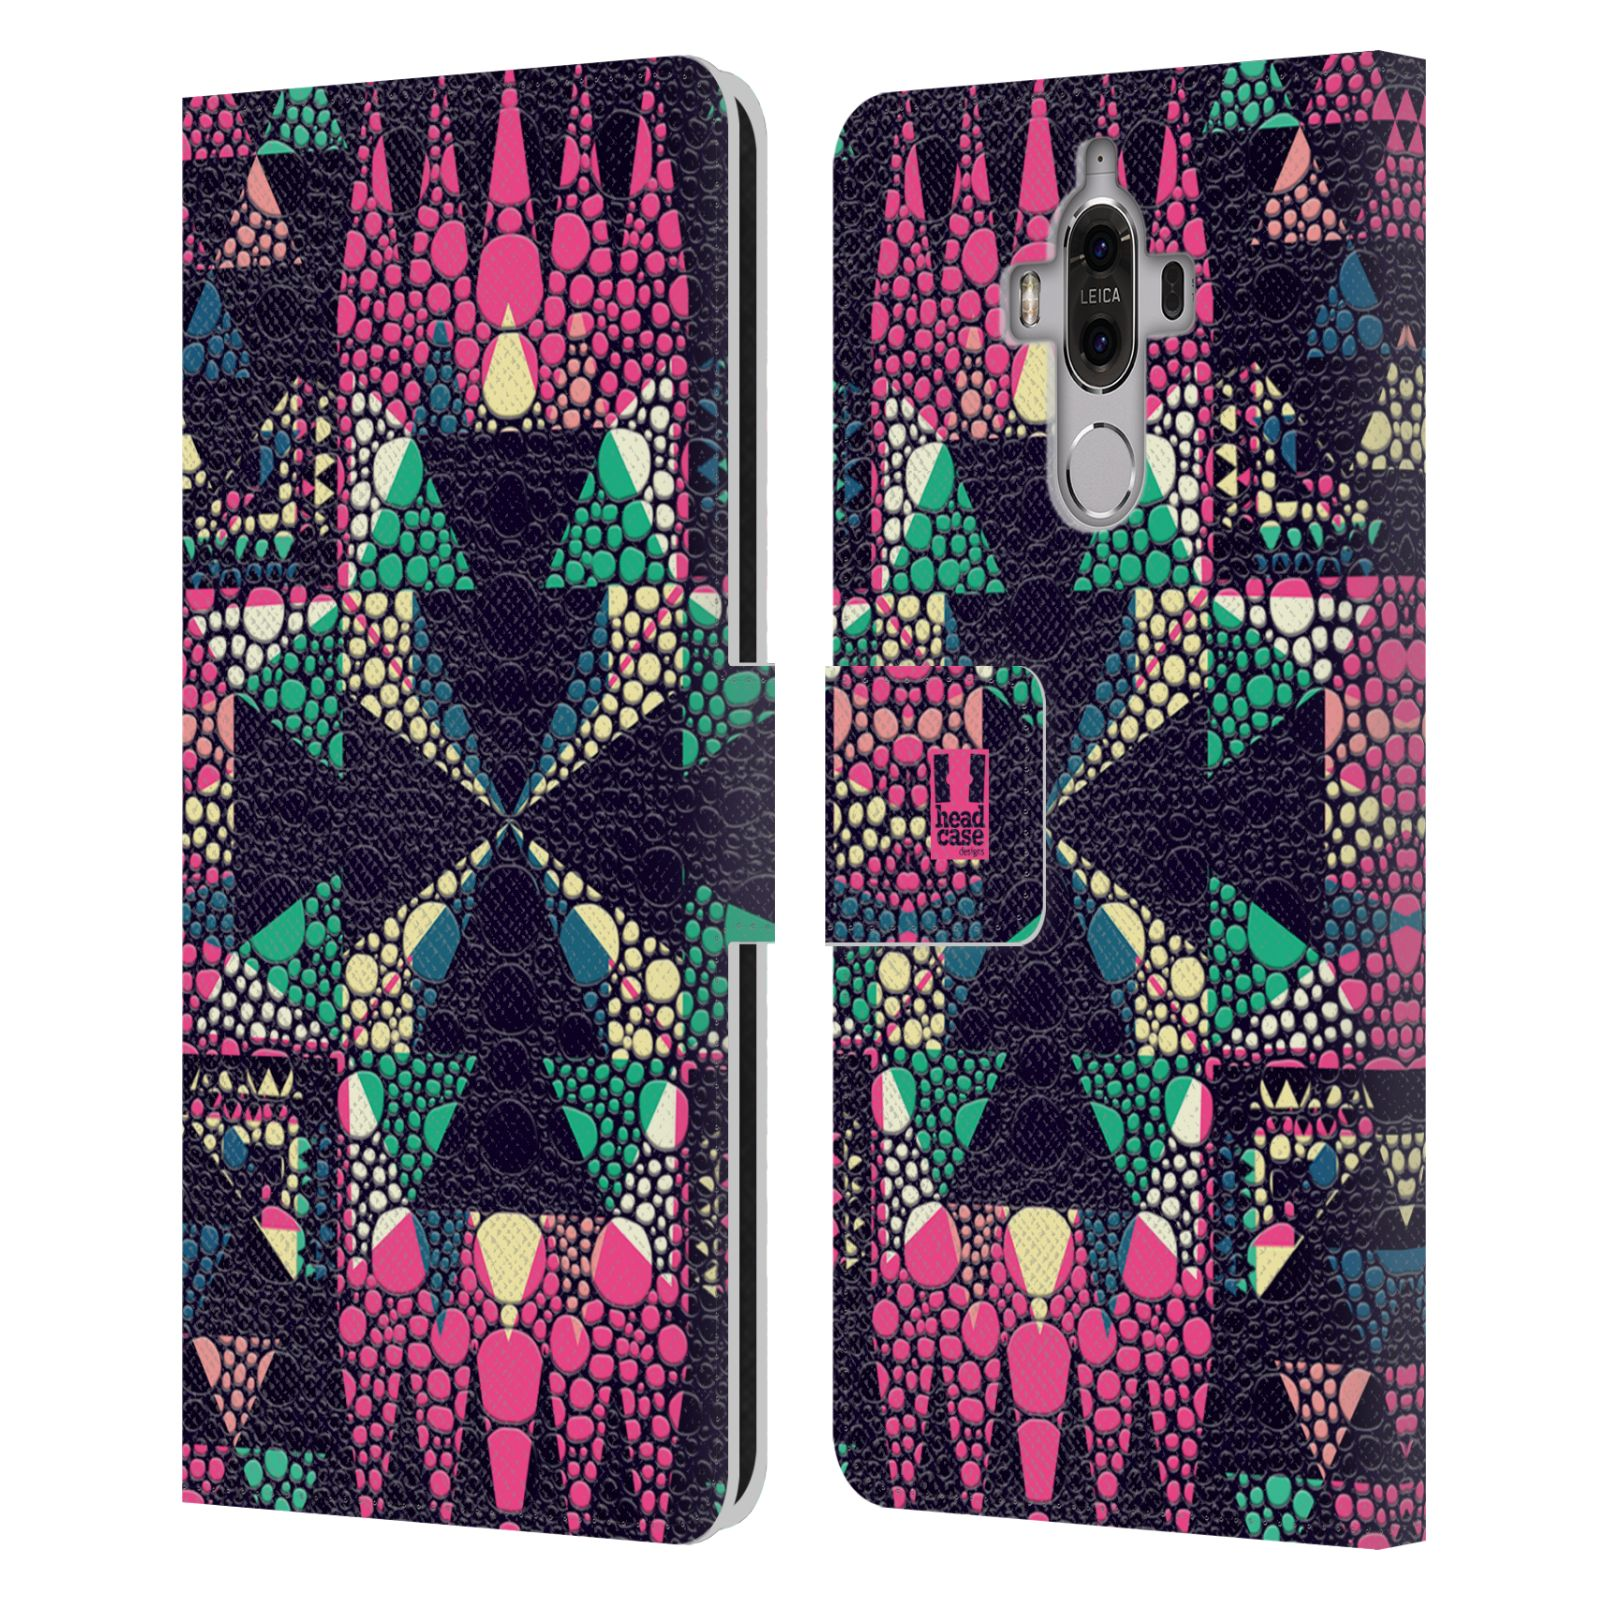 HEAD-CASE-DESIGNS-CHAMELEON-SKIN-PATTERNS-LEATHER-BOOK-CASE-FOR-HUAWEI-MATE-9